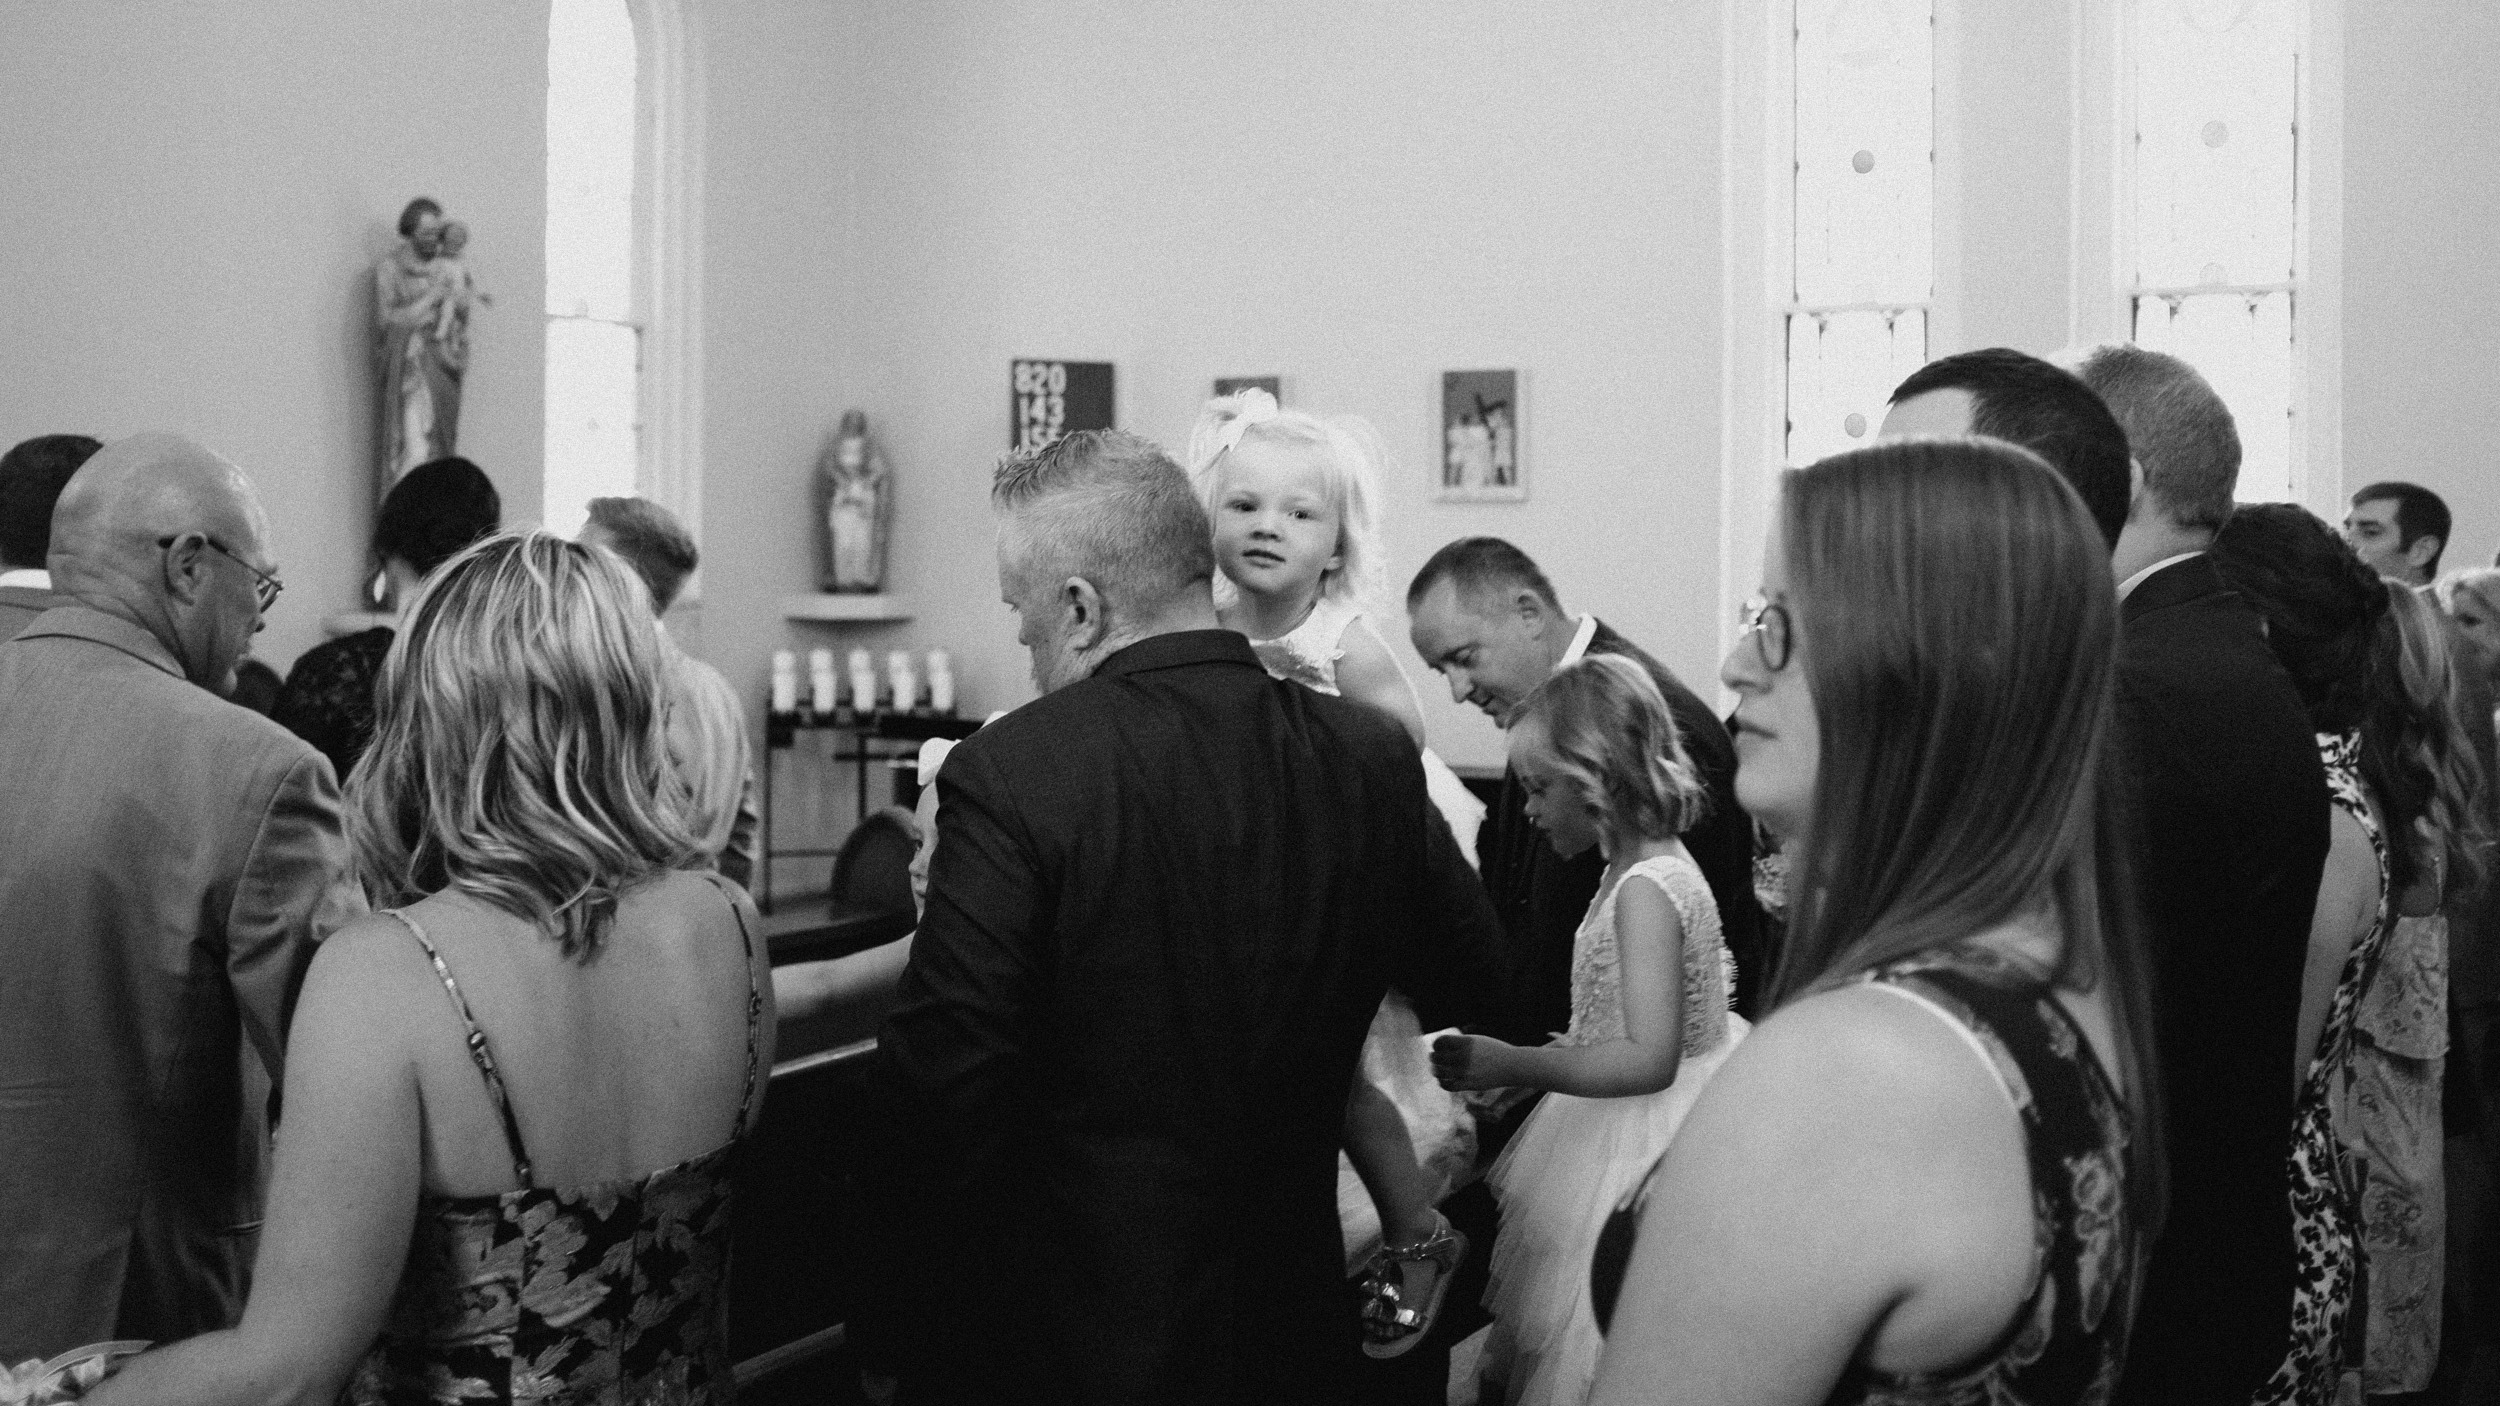 alec_vanderboom_john_micahel_lucy_kansas_city_wedding_photographer-0029.jpg